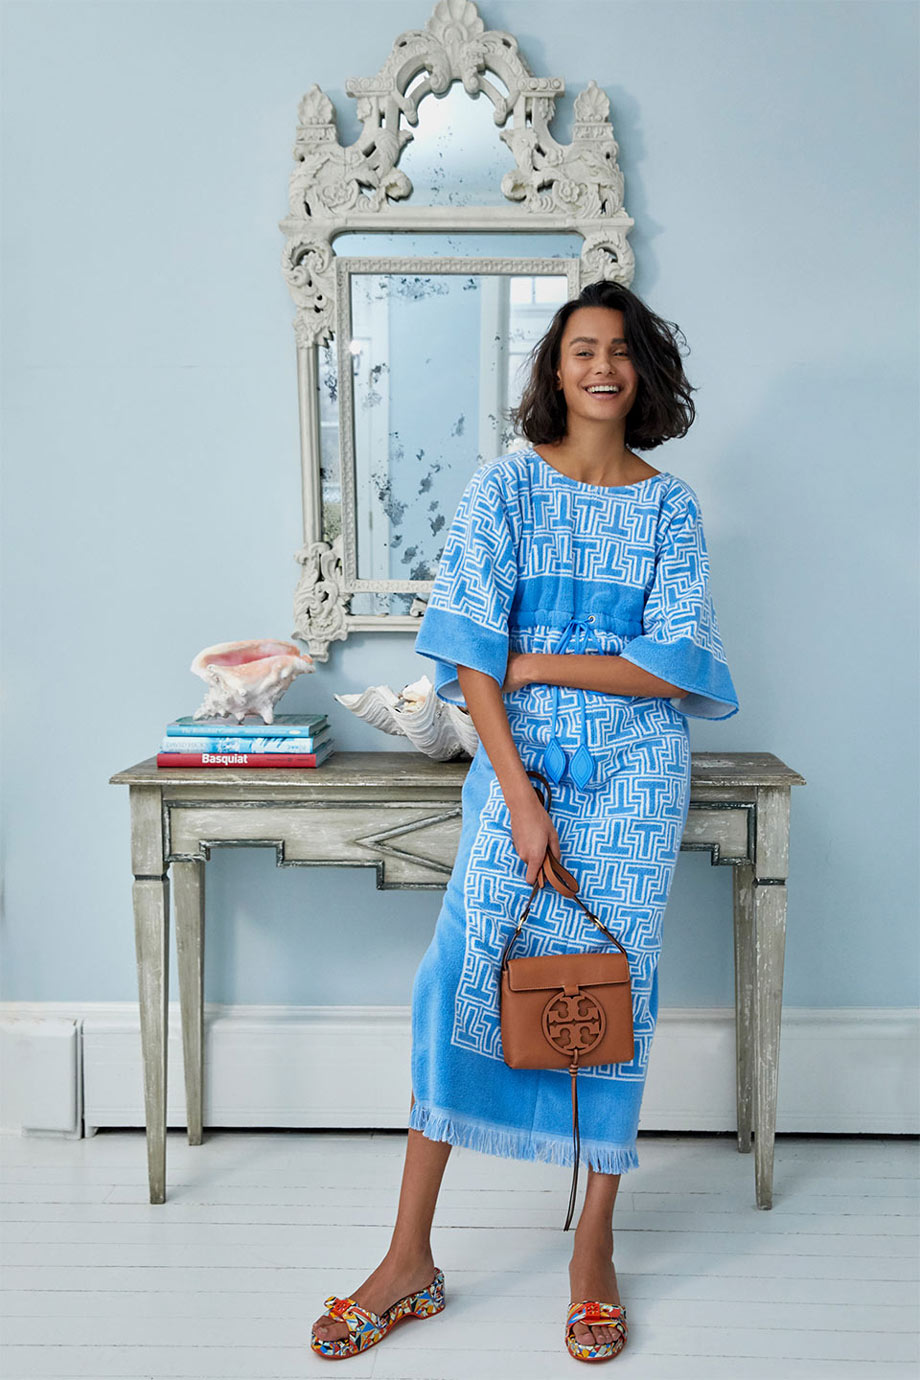 Tile-T Dress (from Tory Burch)